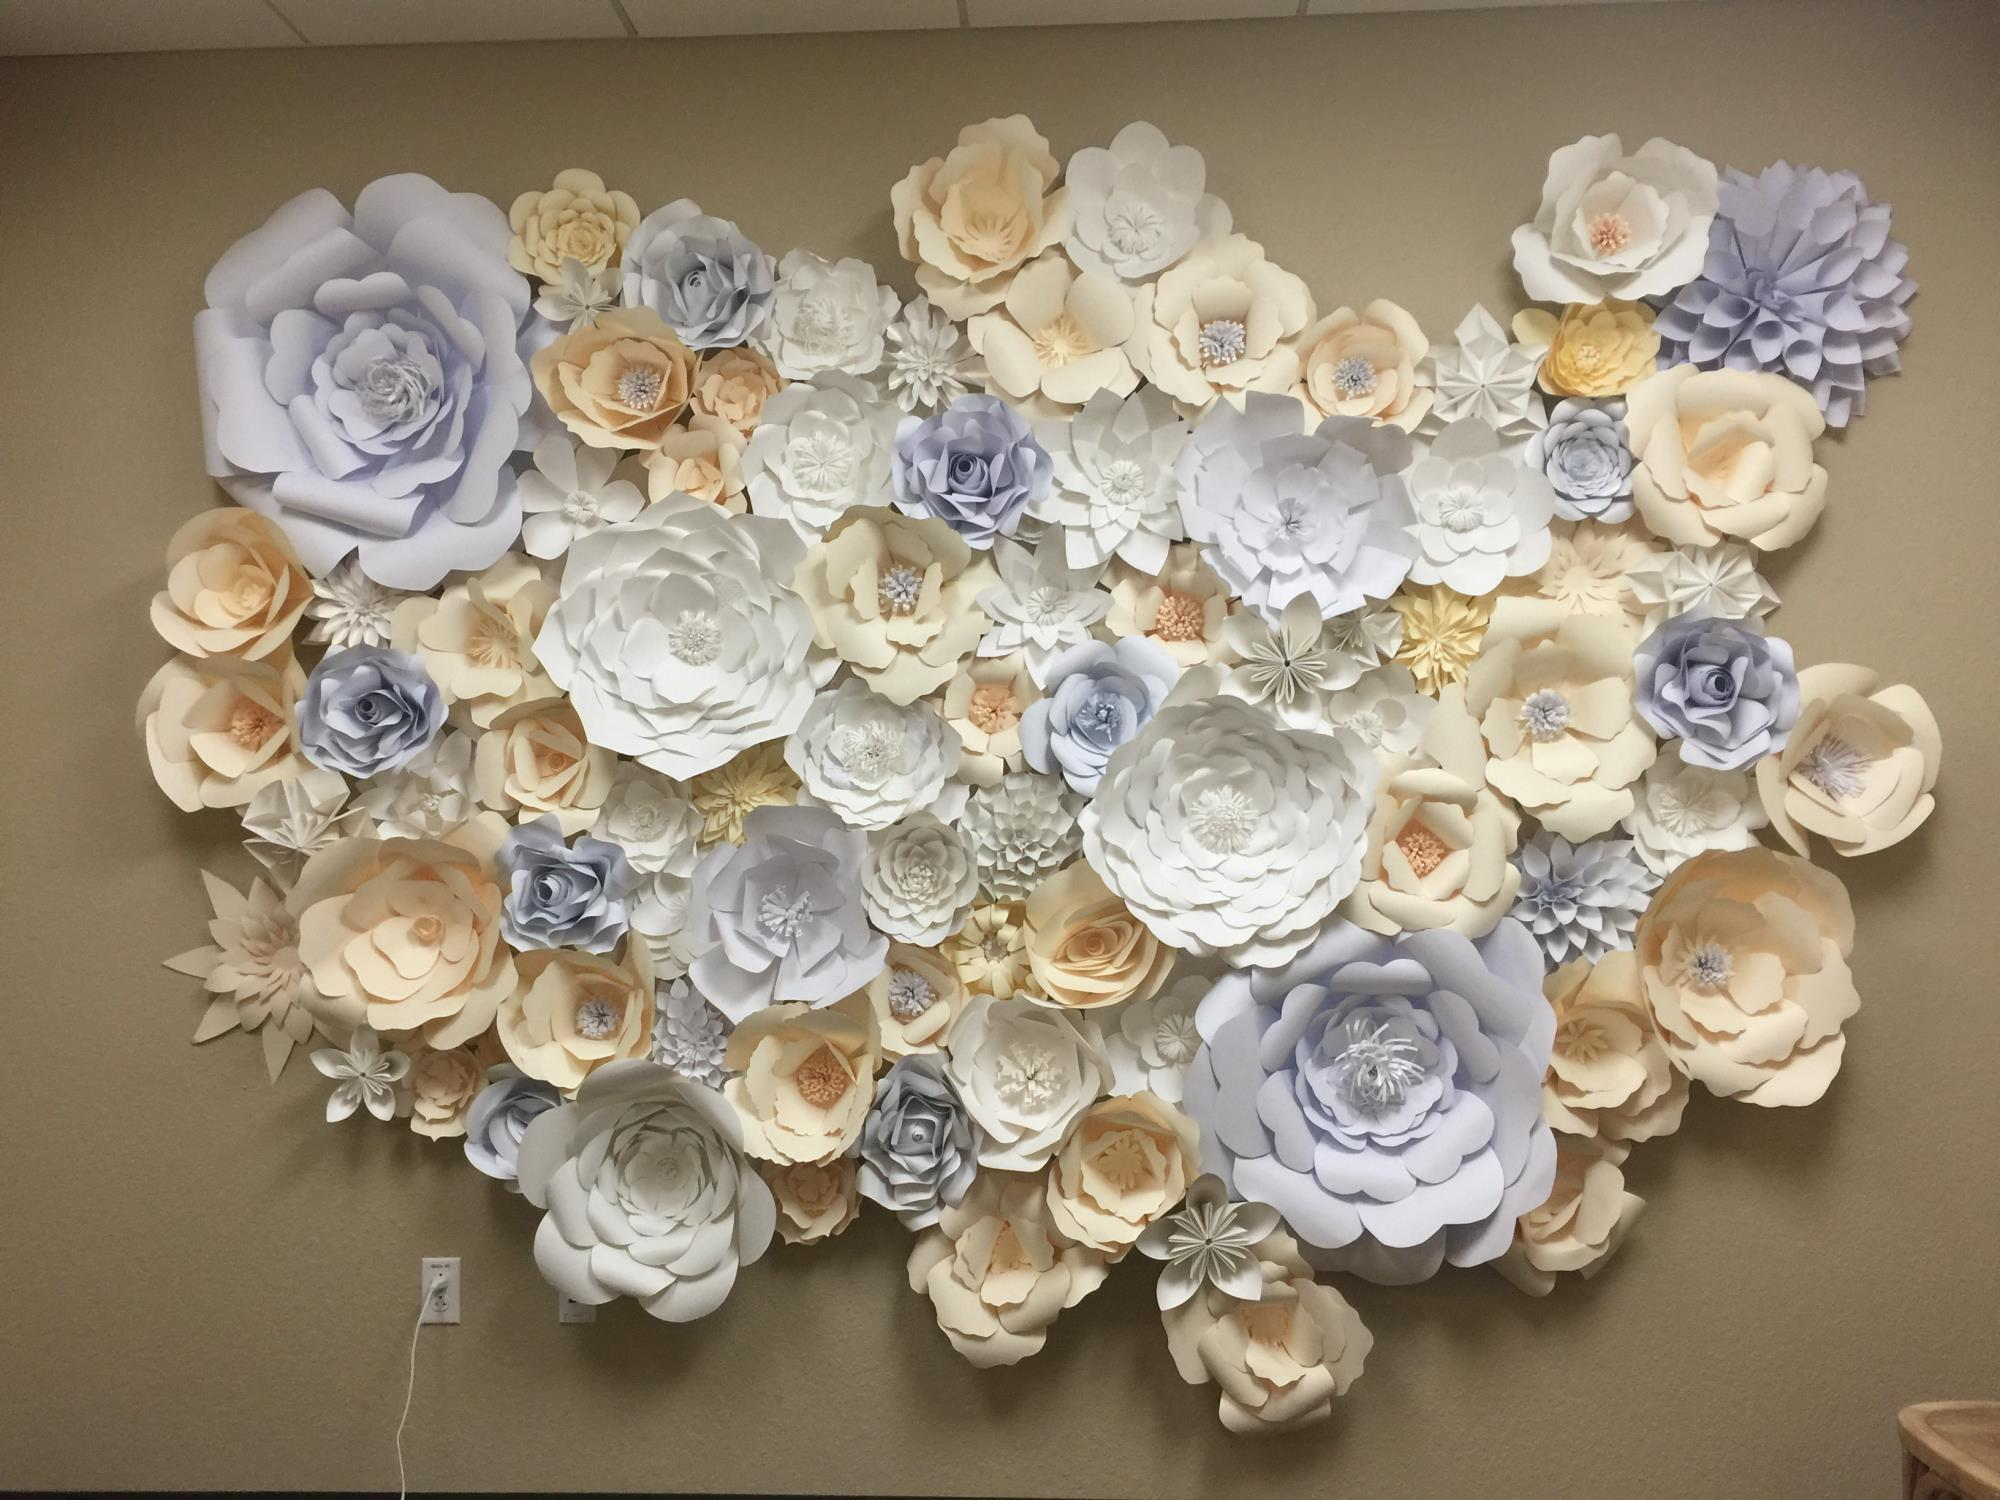 Paper flowers on a wall